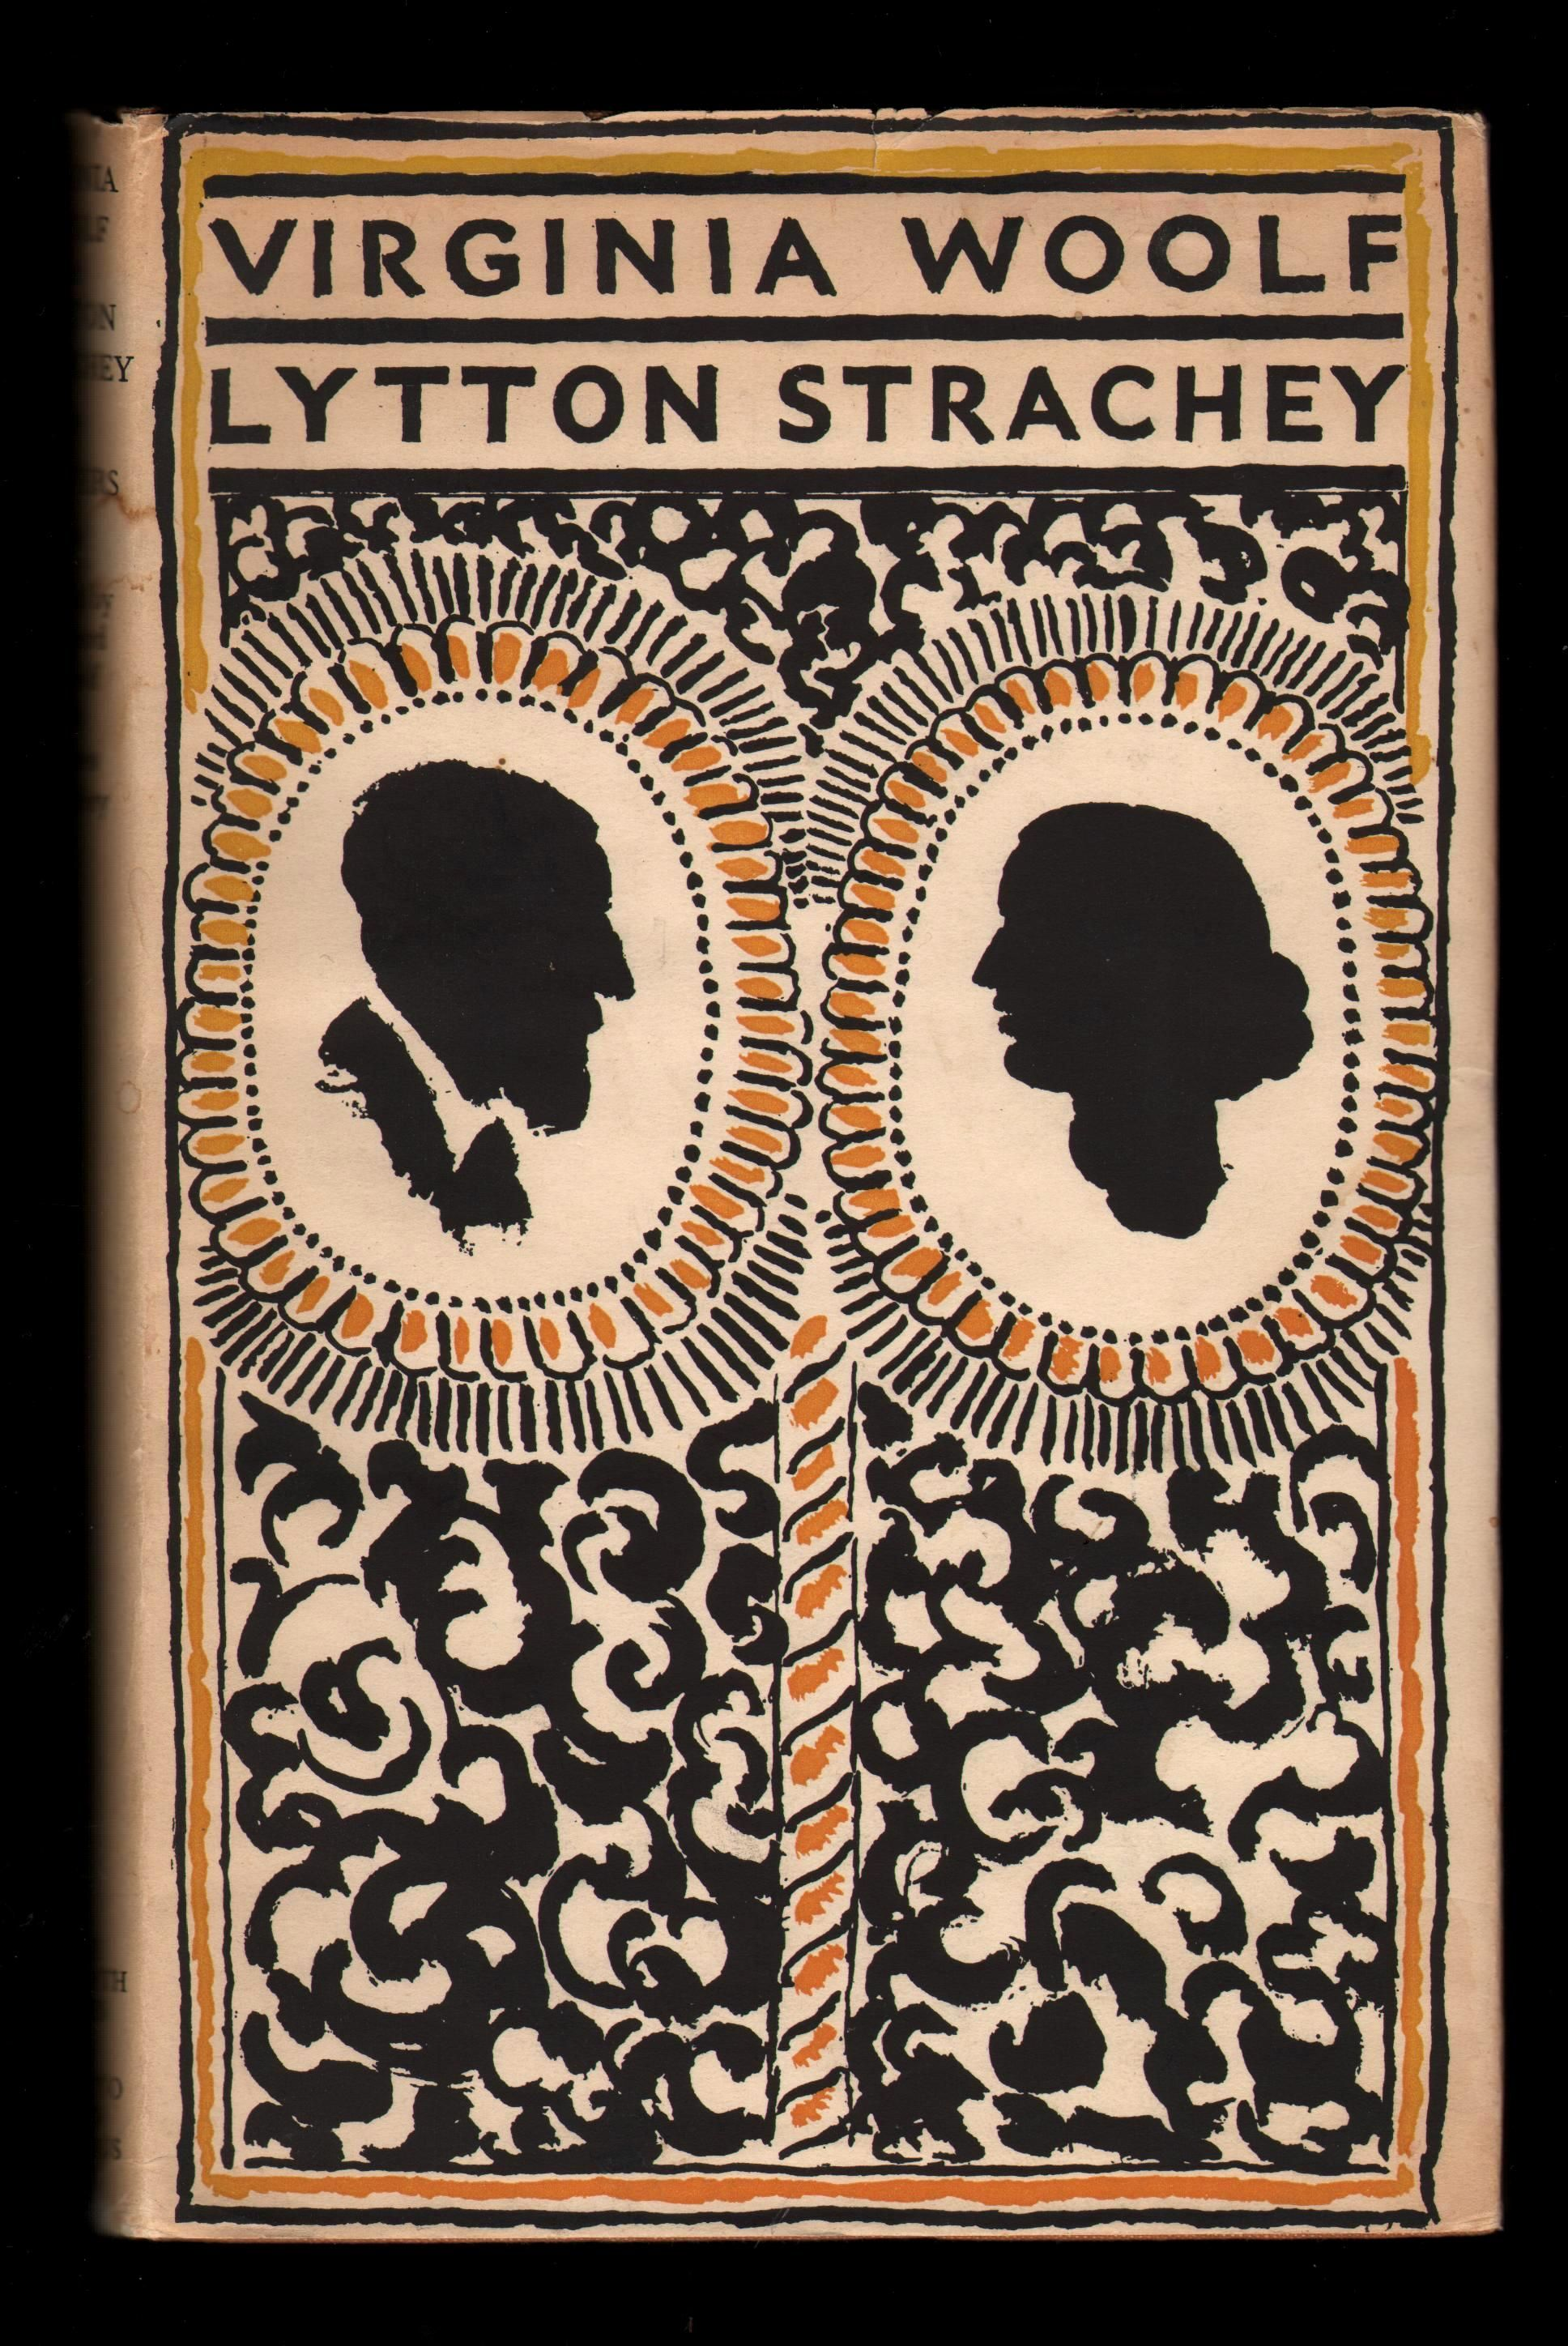 Virginia Woolf Lytton Strachey Letters The Hogarth Press 1956